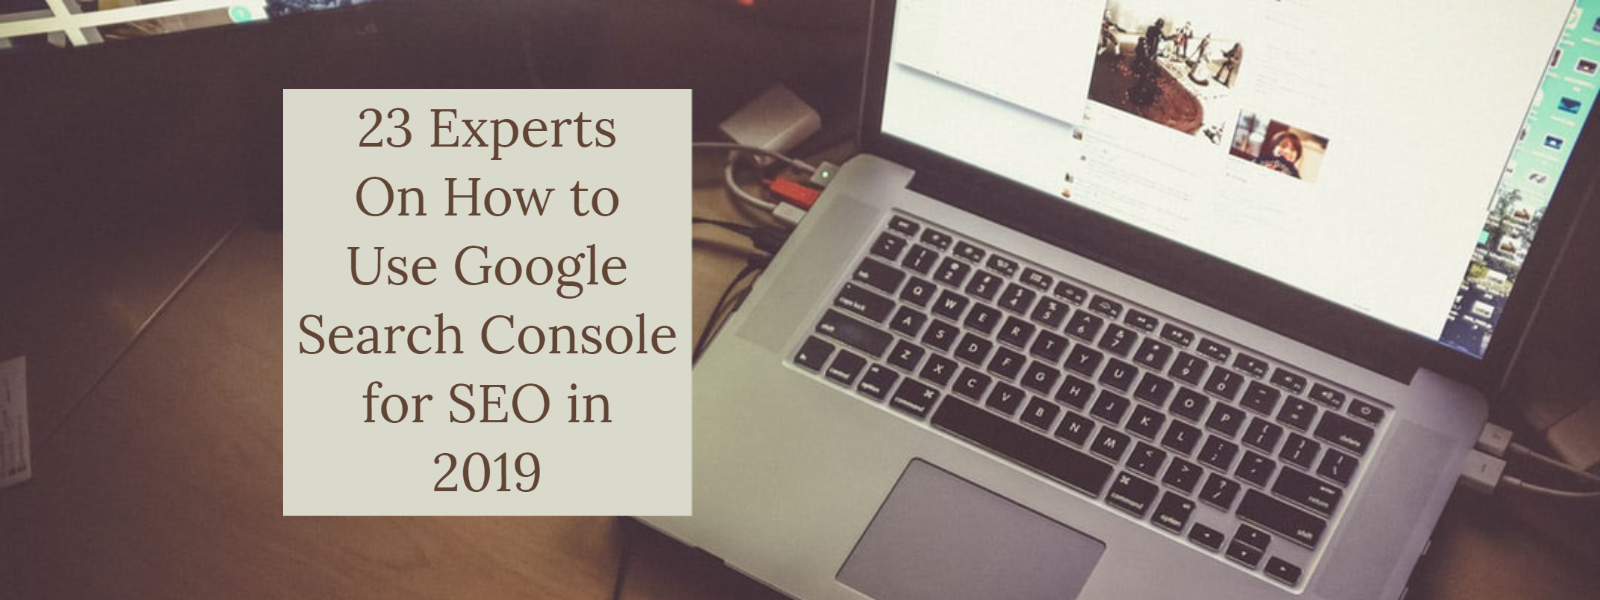 23 Experts On How to Use Google Search Console for SEO in 2019